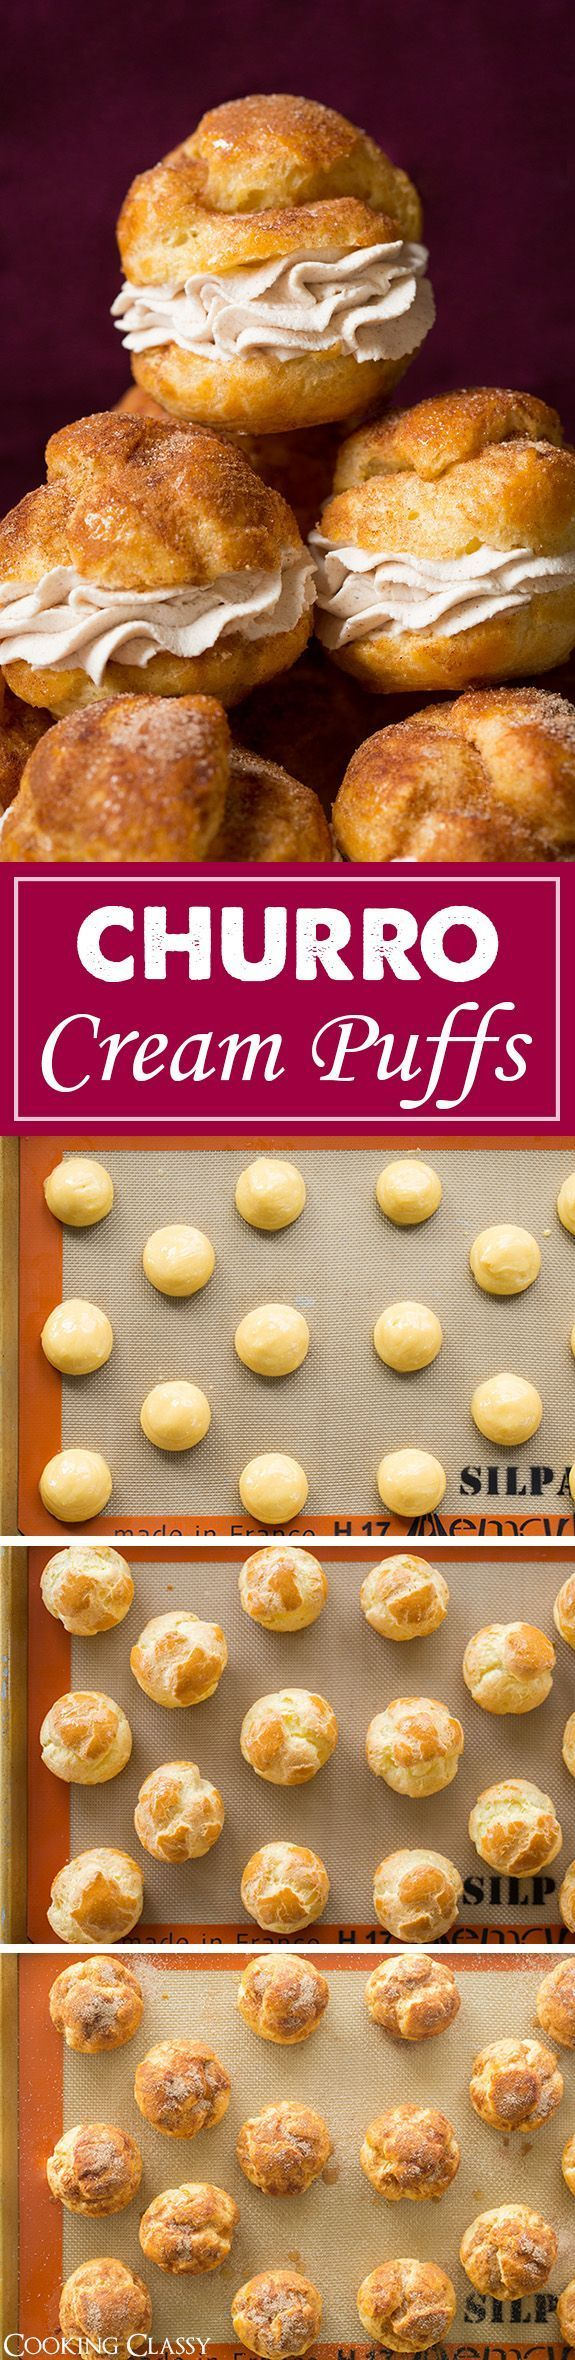 CHURRO CREAM PUFFS - these are to die for! Where have they been all my life?